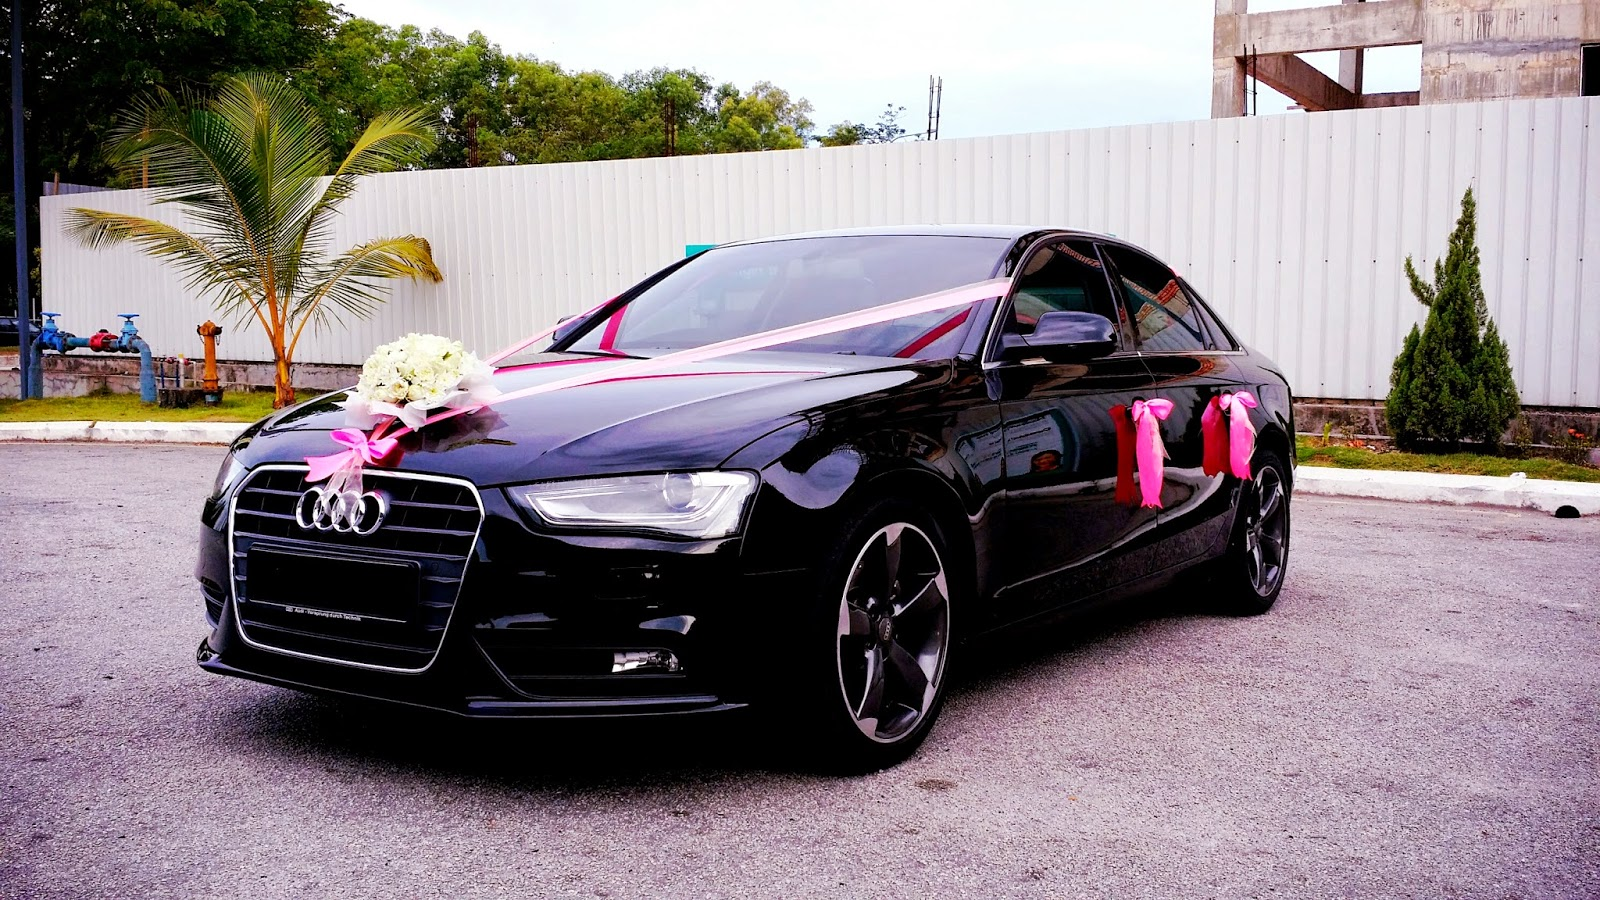 Redorca malaysia wedding and event car rental audi a4 wedding car audi a4 wedding car with pink deco and white flowers junglespirit Gallery